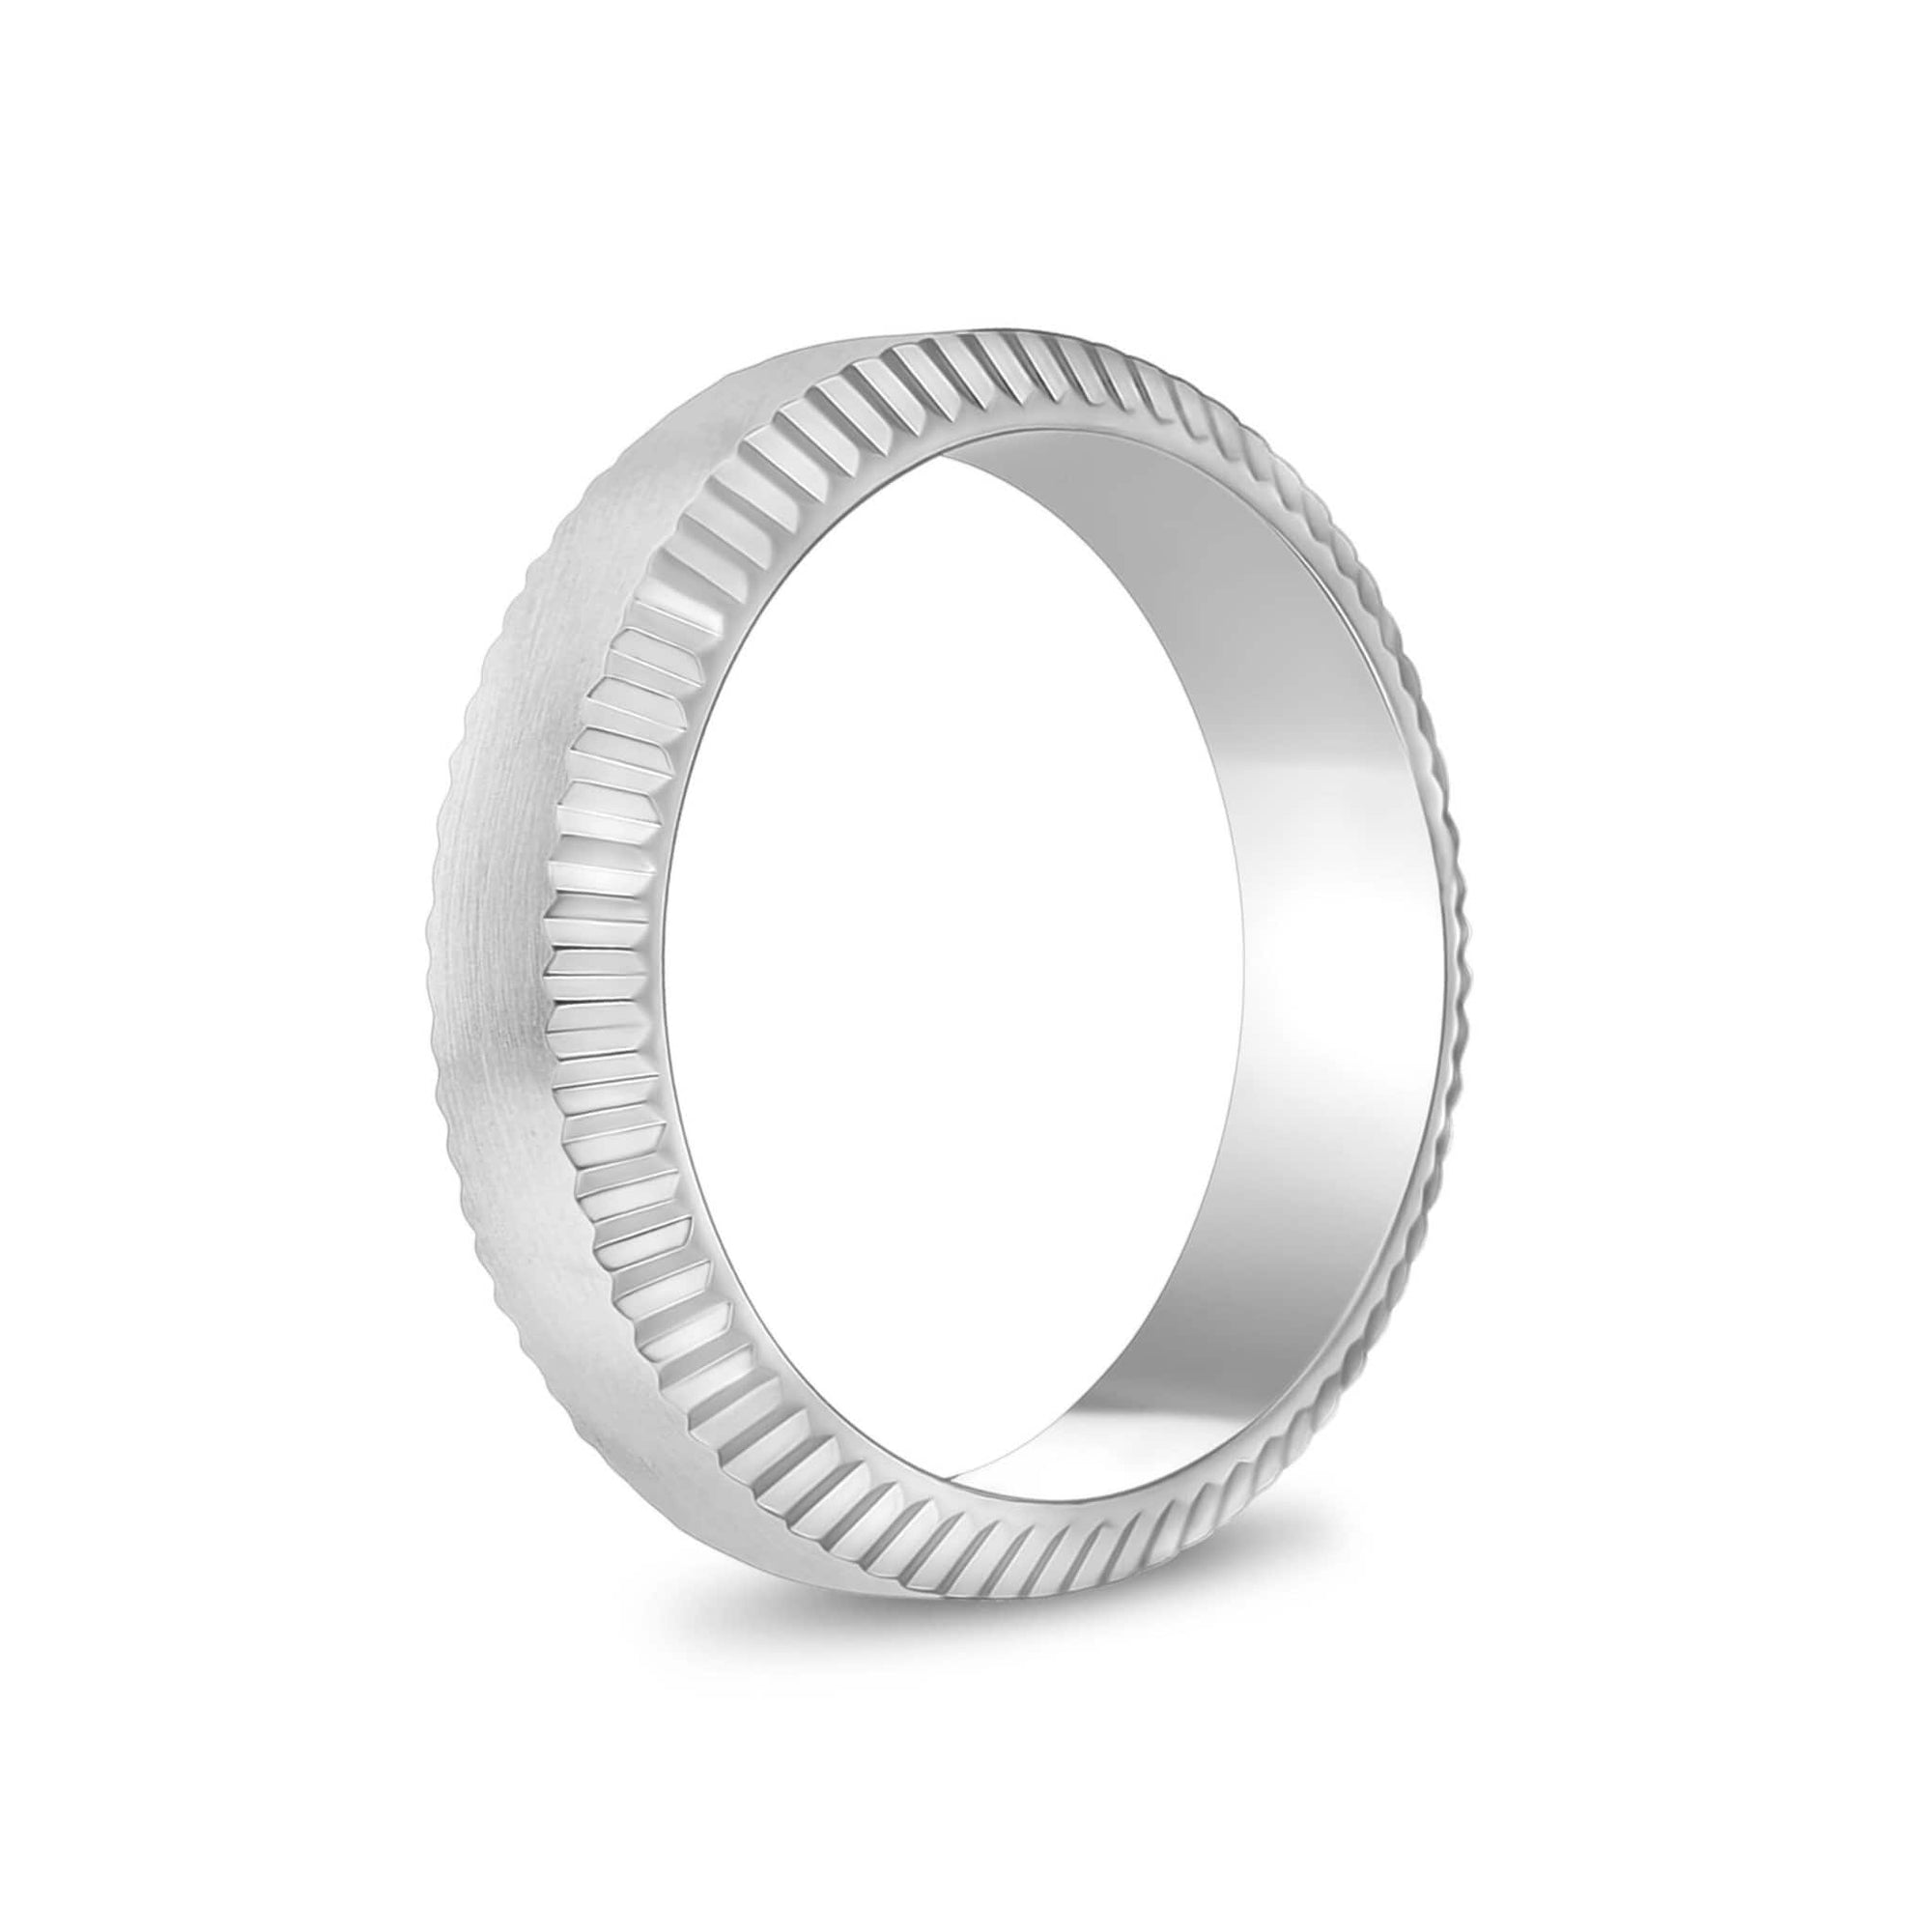 6mm Beveled Edge Flat Steel Band Ring at Arman's Jewellers